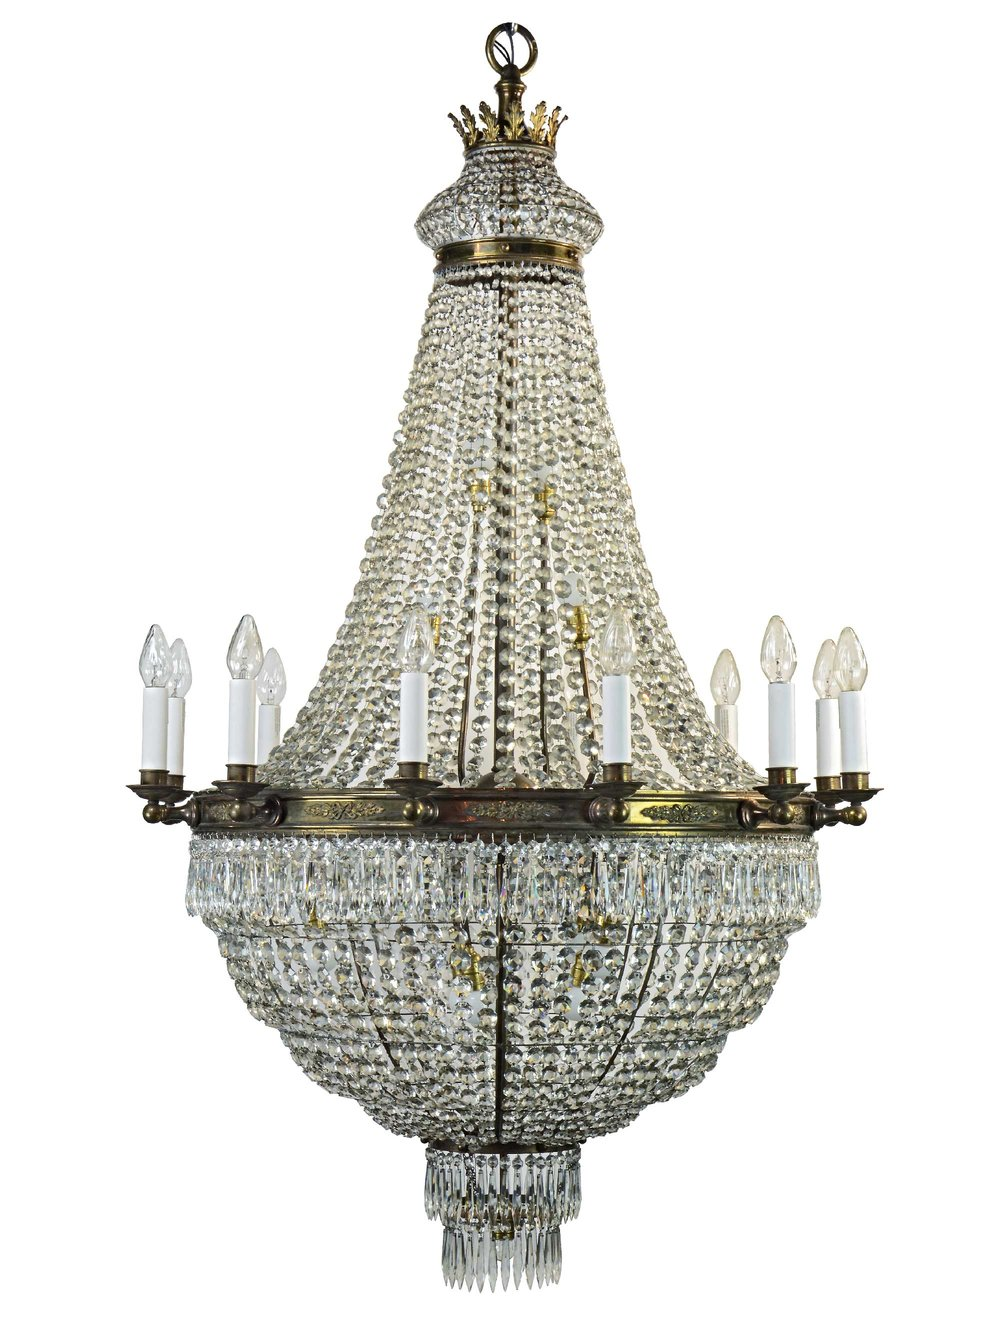 46798-crystal-chandelier.jpg